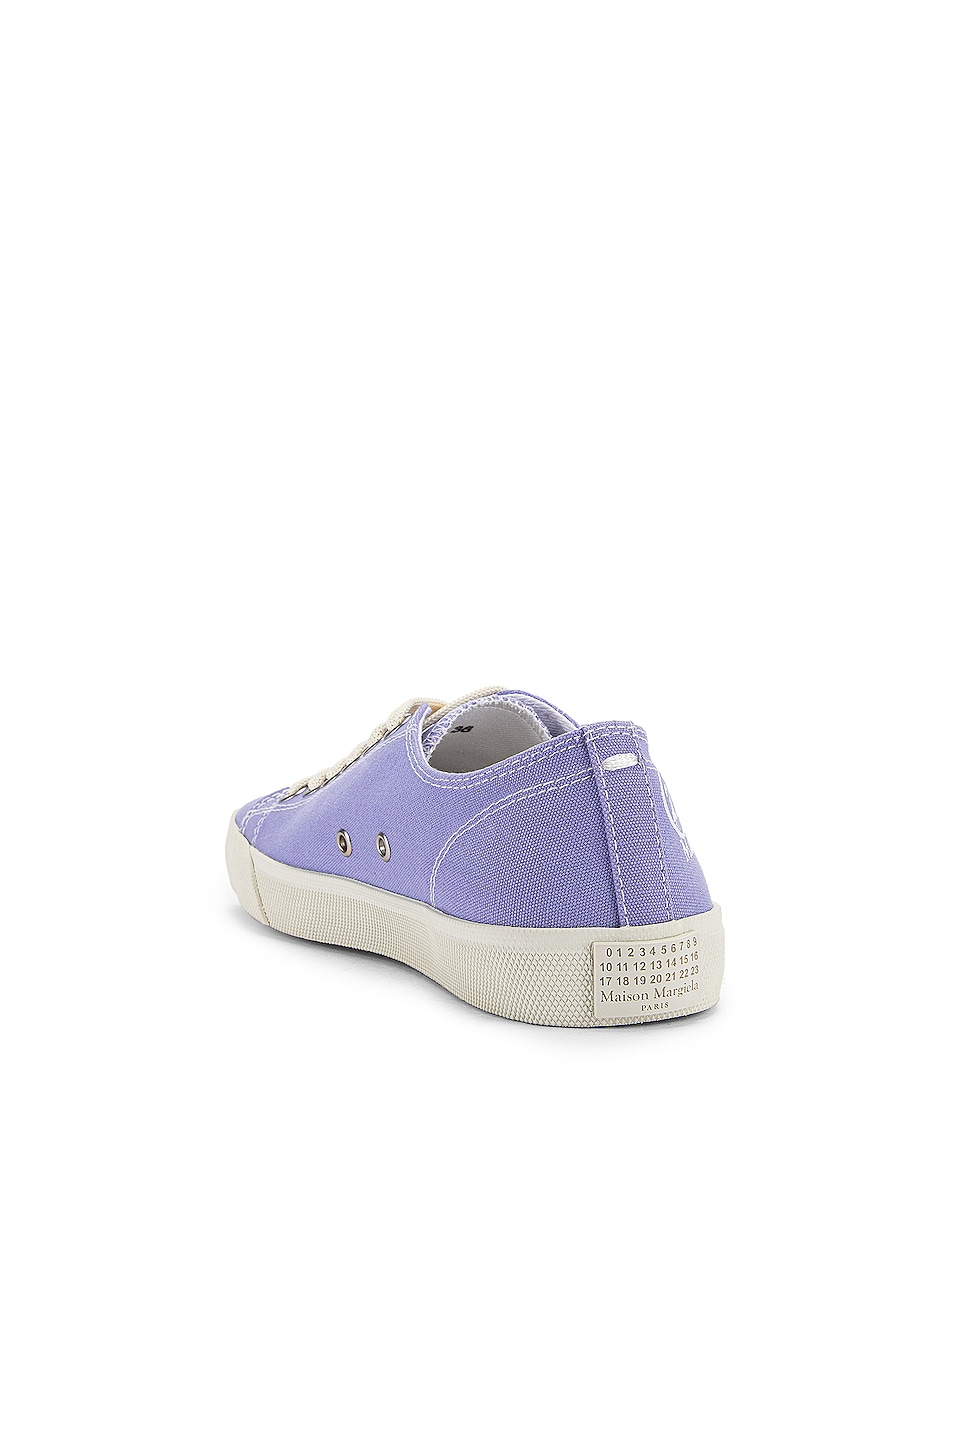 Image 4 of Maison Margiela Tabi Low Top Canvas Sneakers in Thistle